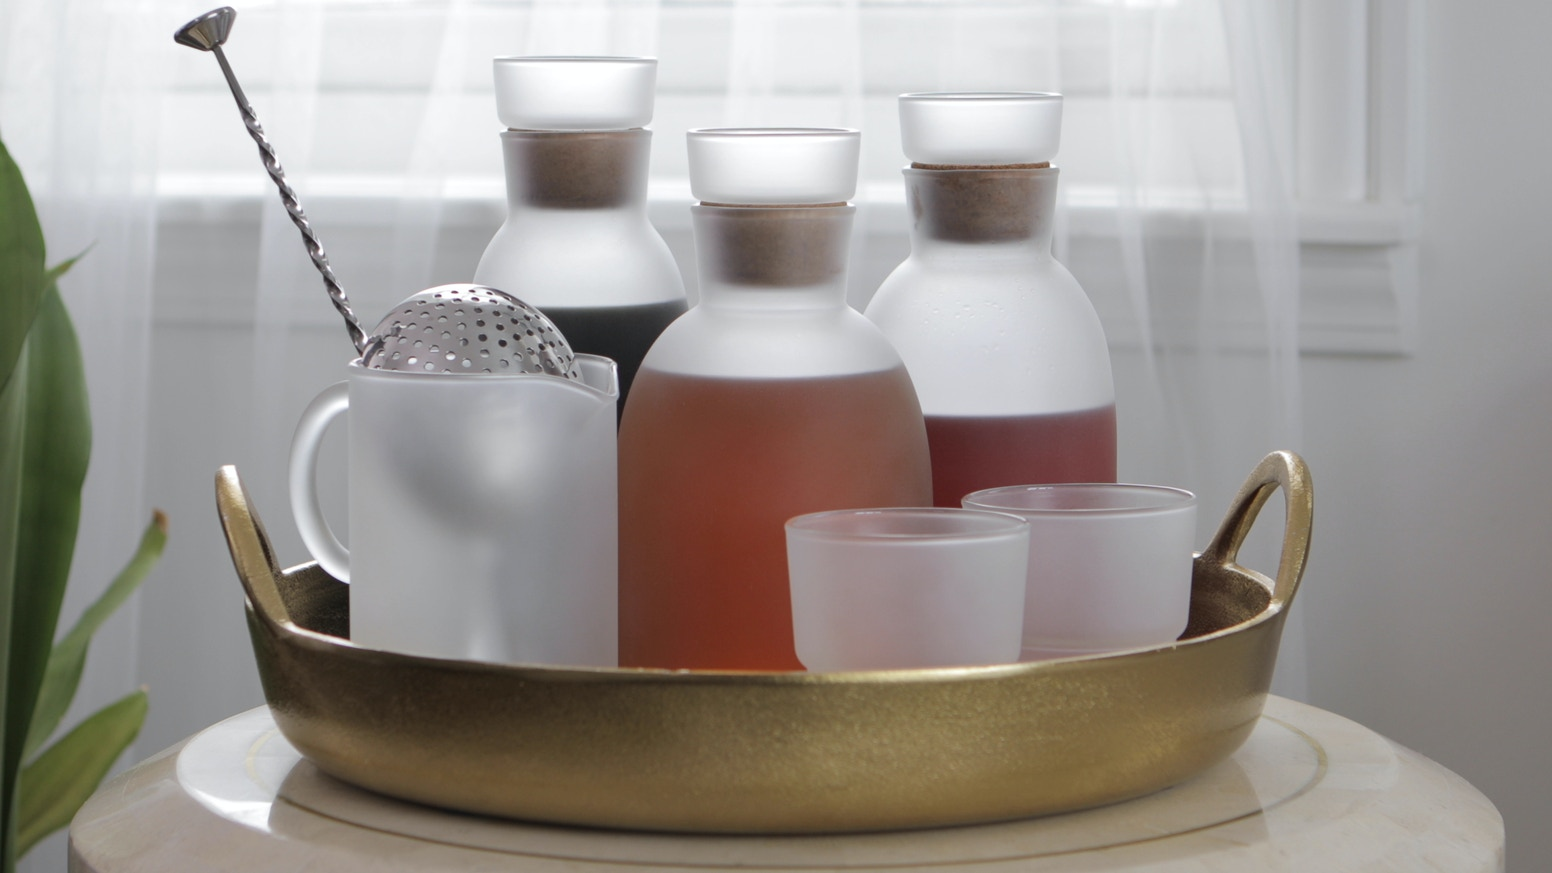 Elevate your home cocktail game with a sculptural set of hand-blown decanters and accessories.